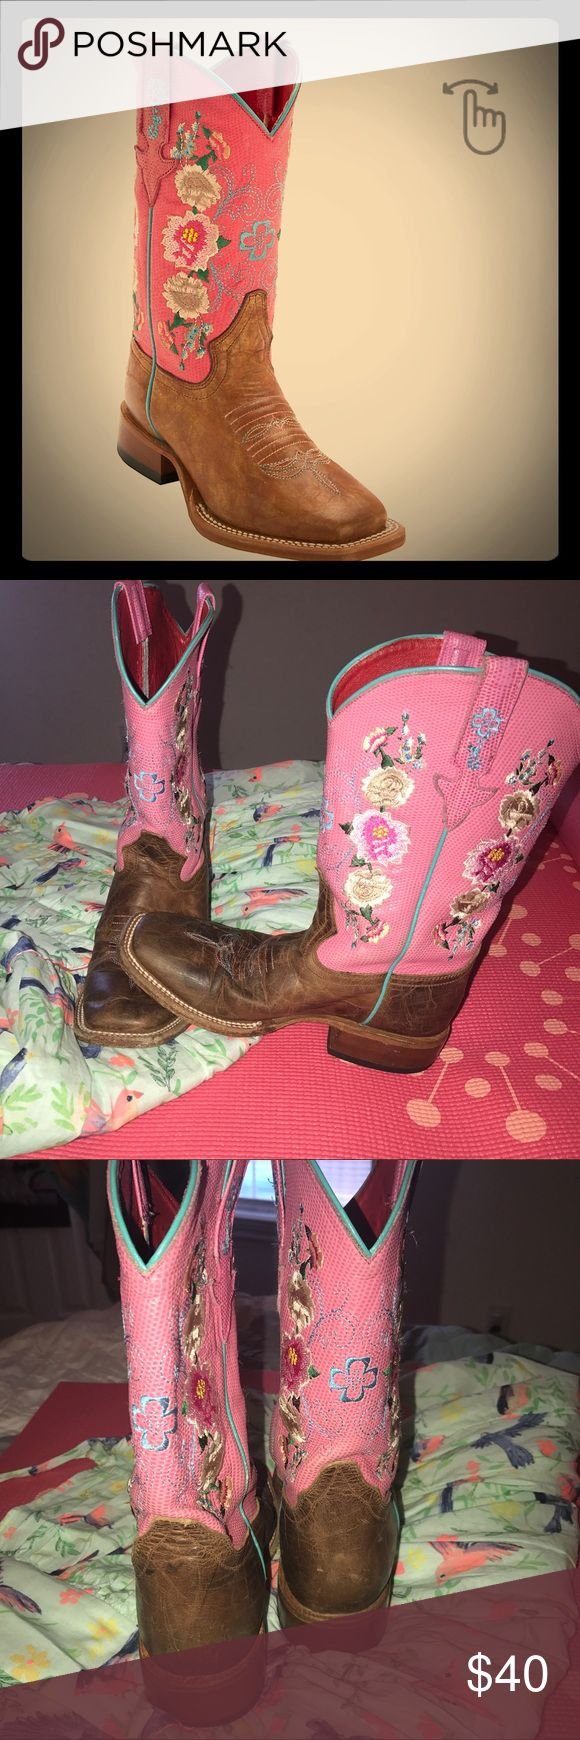 Macie Bean Boots girls 3Y Macie bean boots paid 130, has normal wear but still plenty of life in them for another little girl.  The right boot has a scuff mark up front but not highly noticeable when cleaned and kept.  Scuff seen in picture. macie bean Shoes Boots